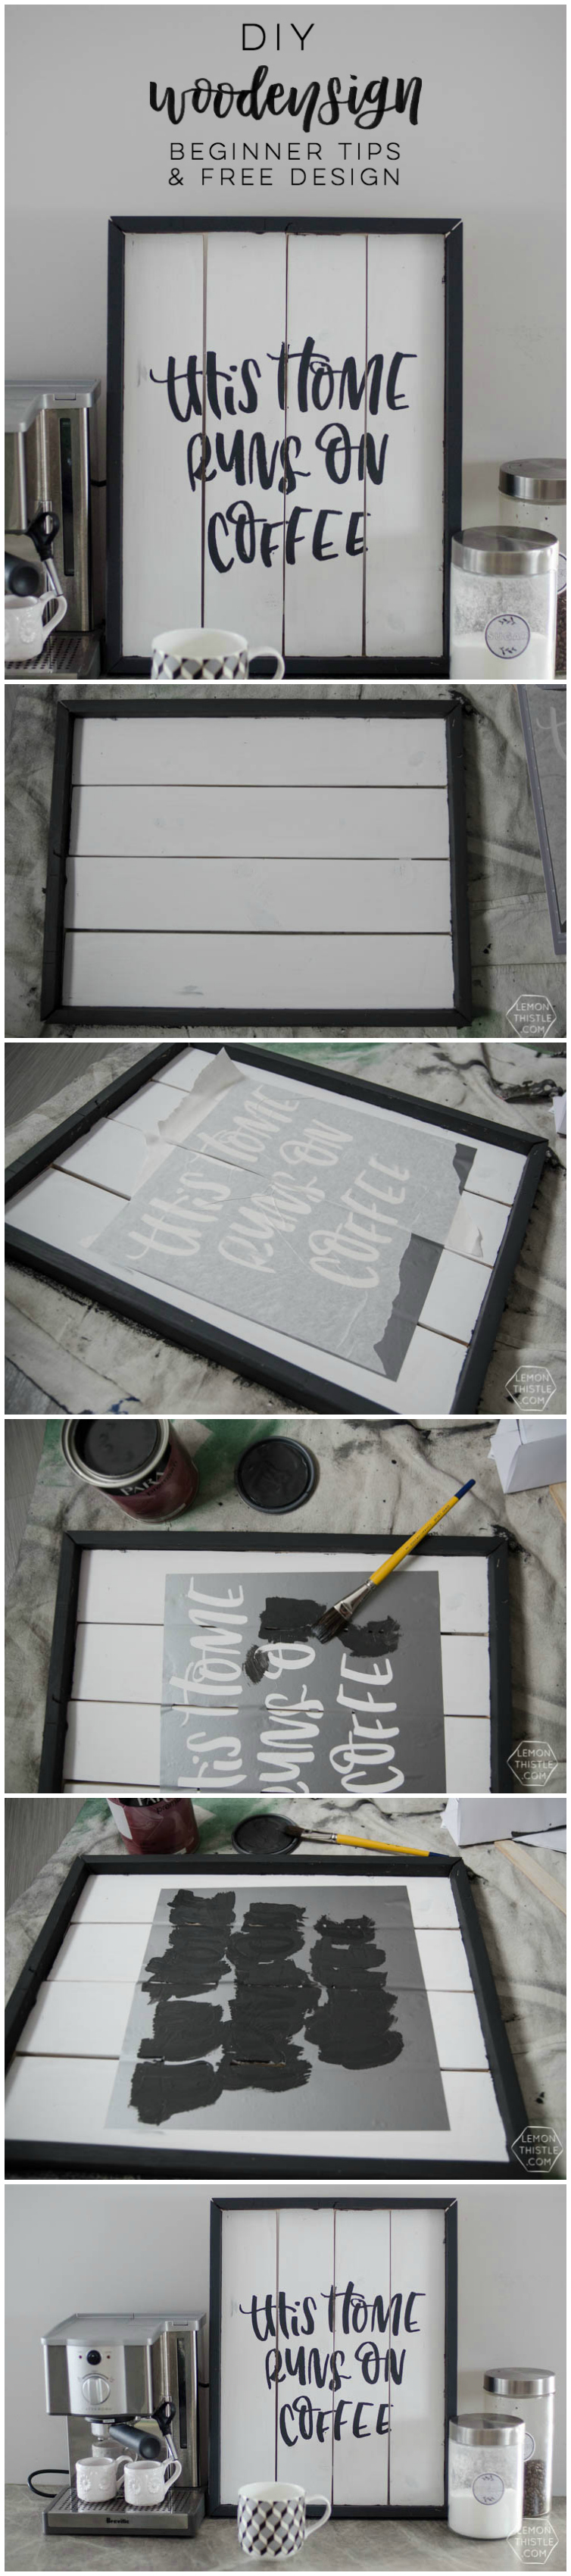 Tips for beginner wooden signs and a free design- these are such good tips!